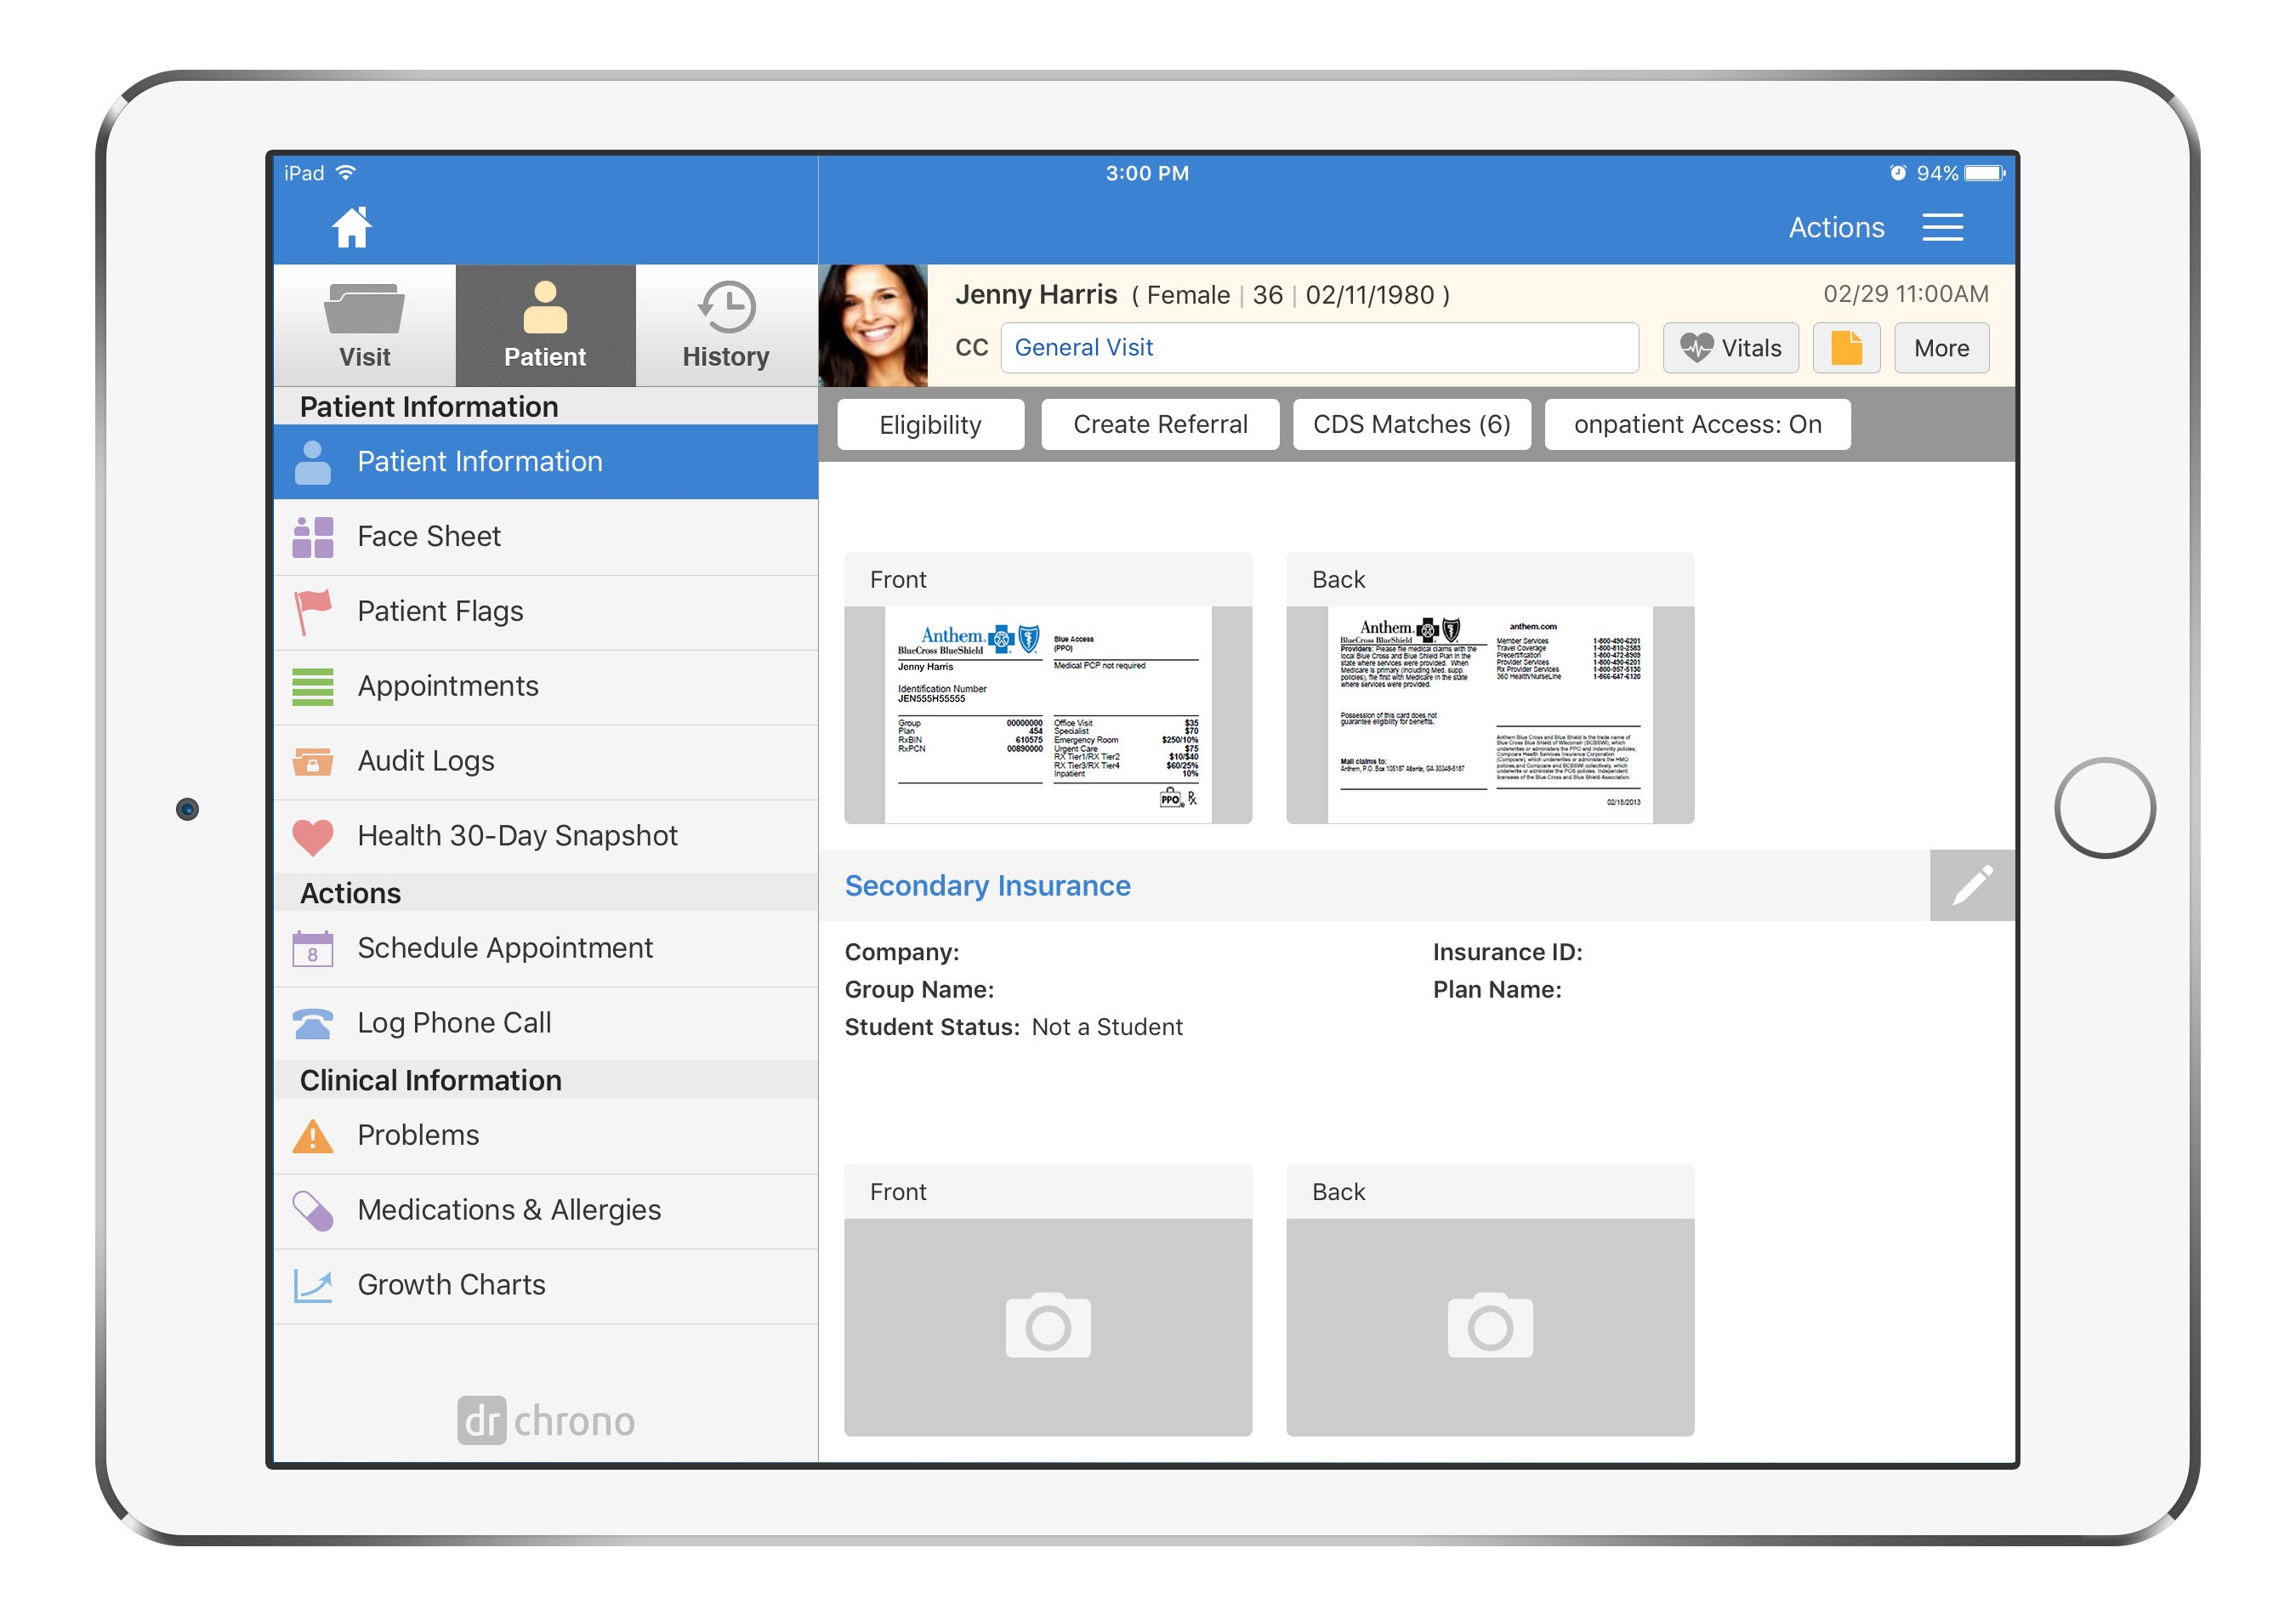 Mobile EHR drchrono Adds Electronic Capture of Insurance, Credit Cards Via App